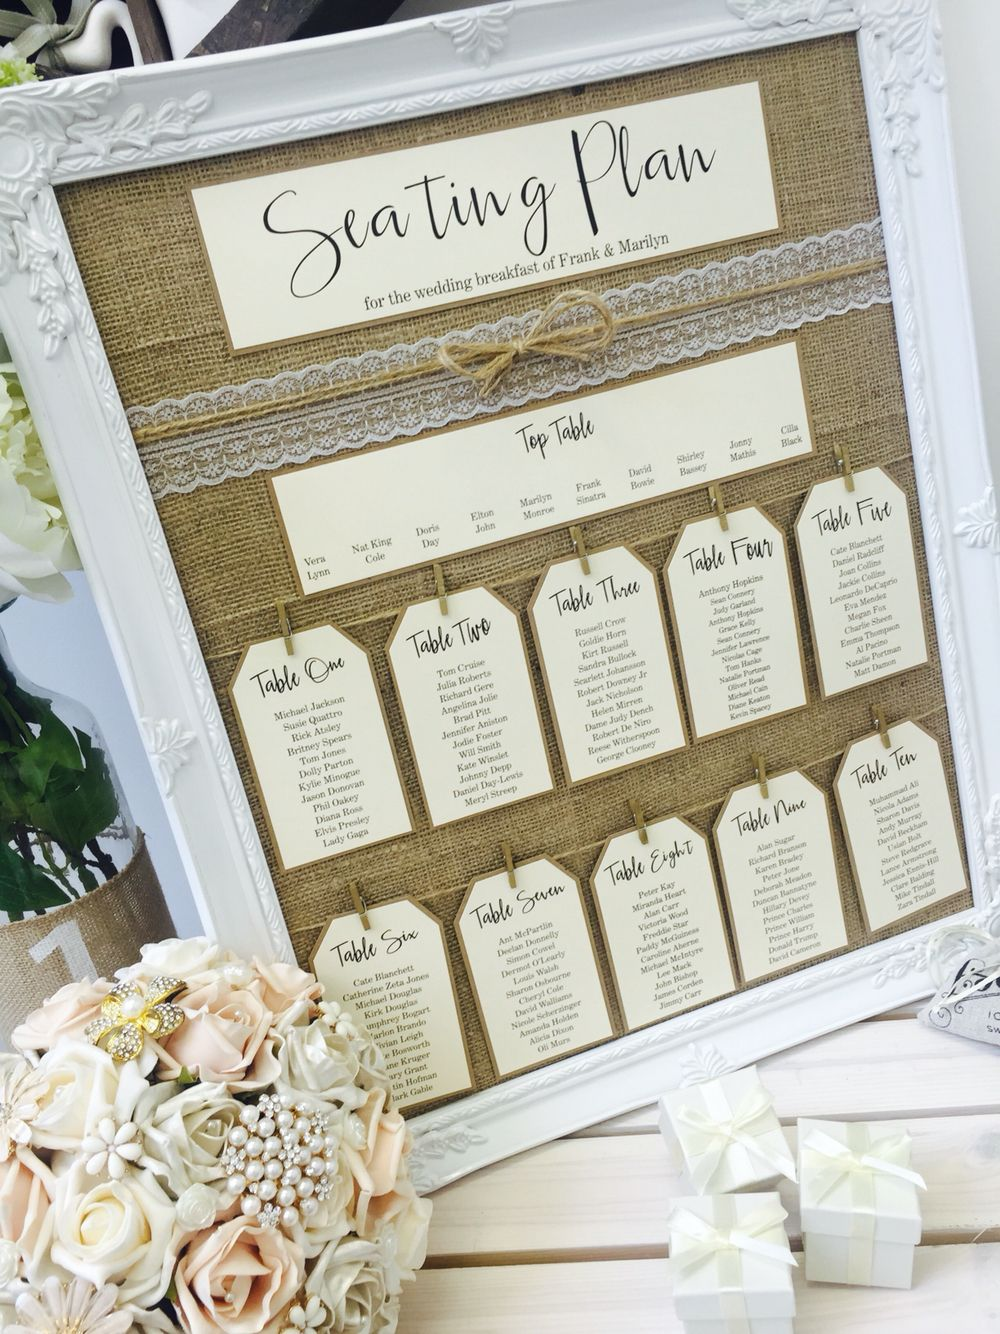 Rustic table plan from The Vow Sheffield. | For a beautiful wedding ...